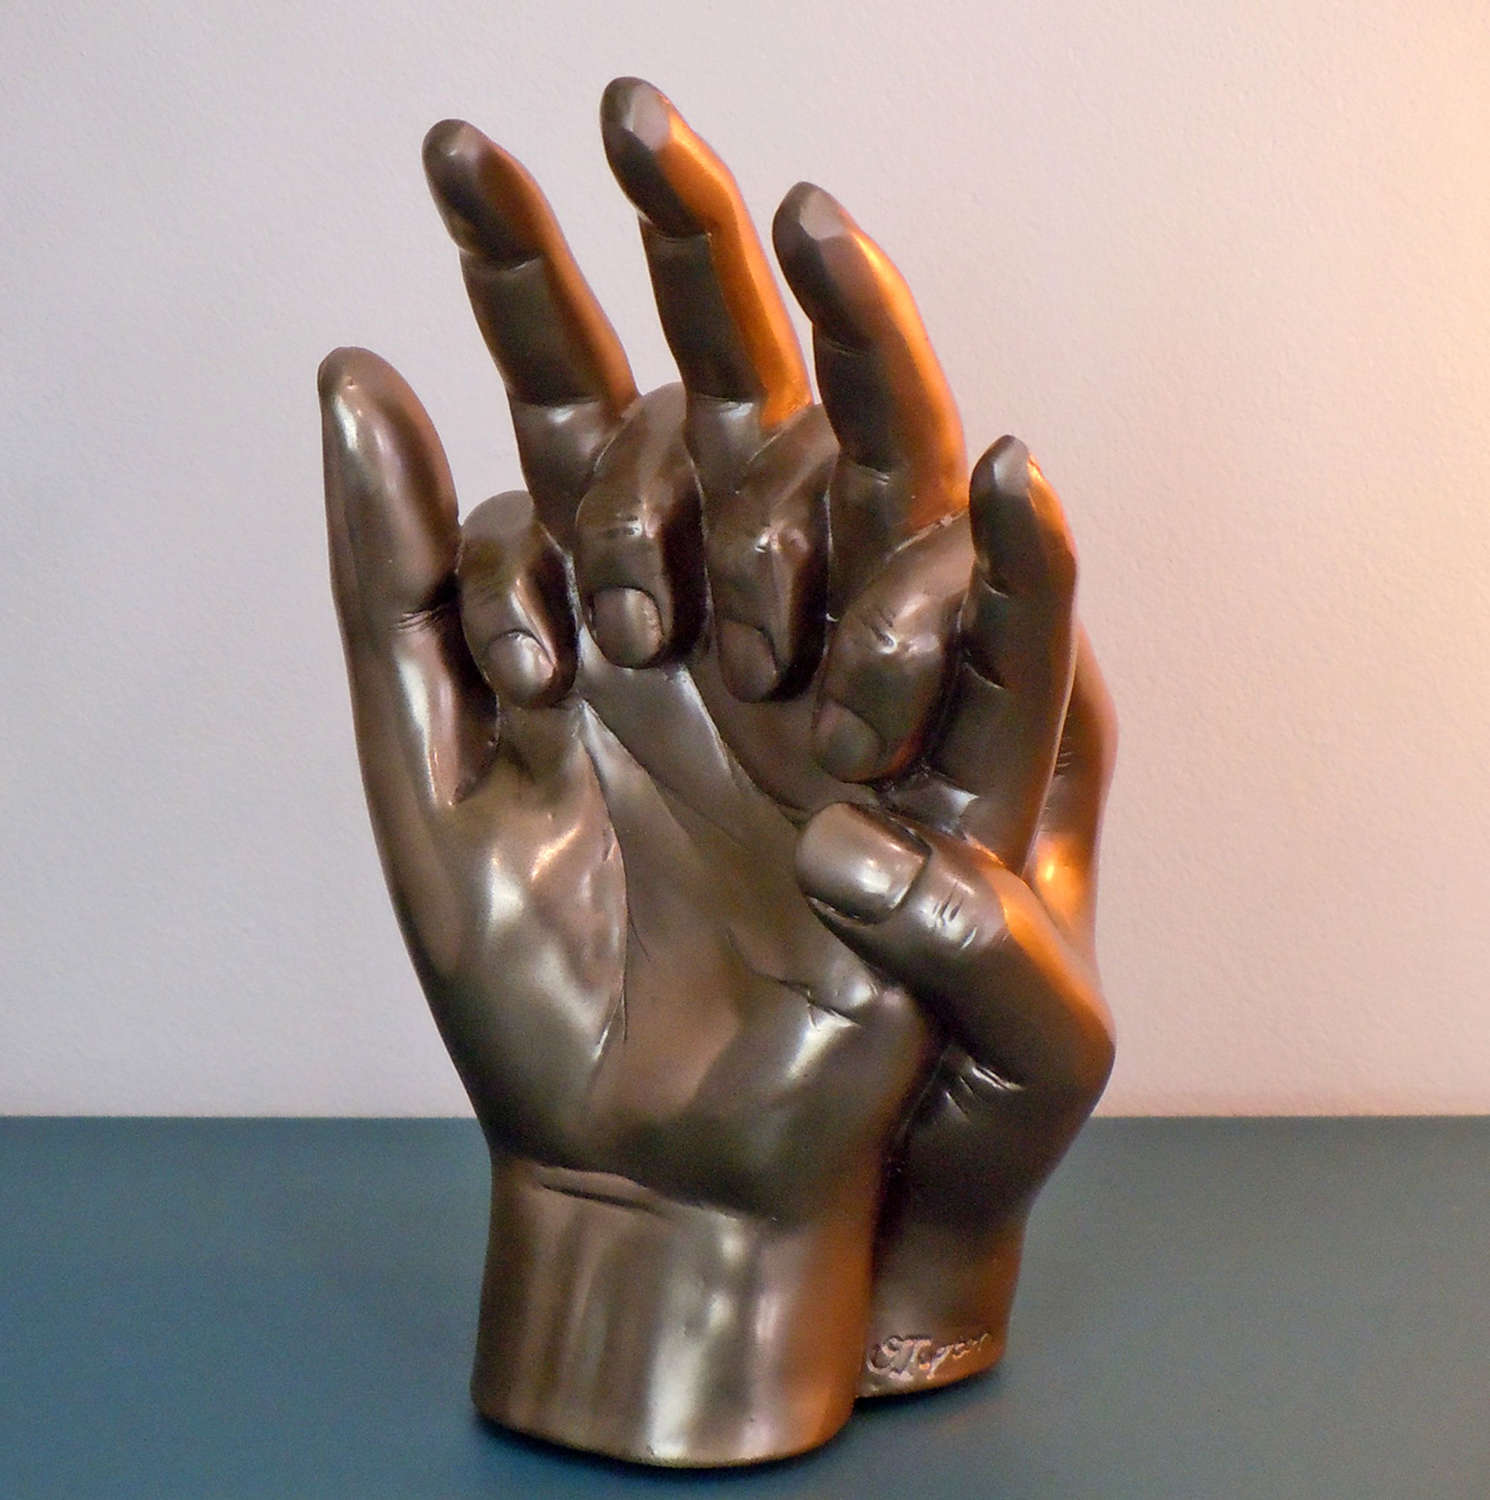 Entwined Hands, Cold cast Bronze sculpture